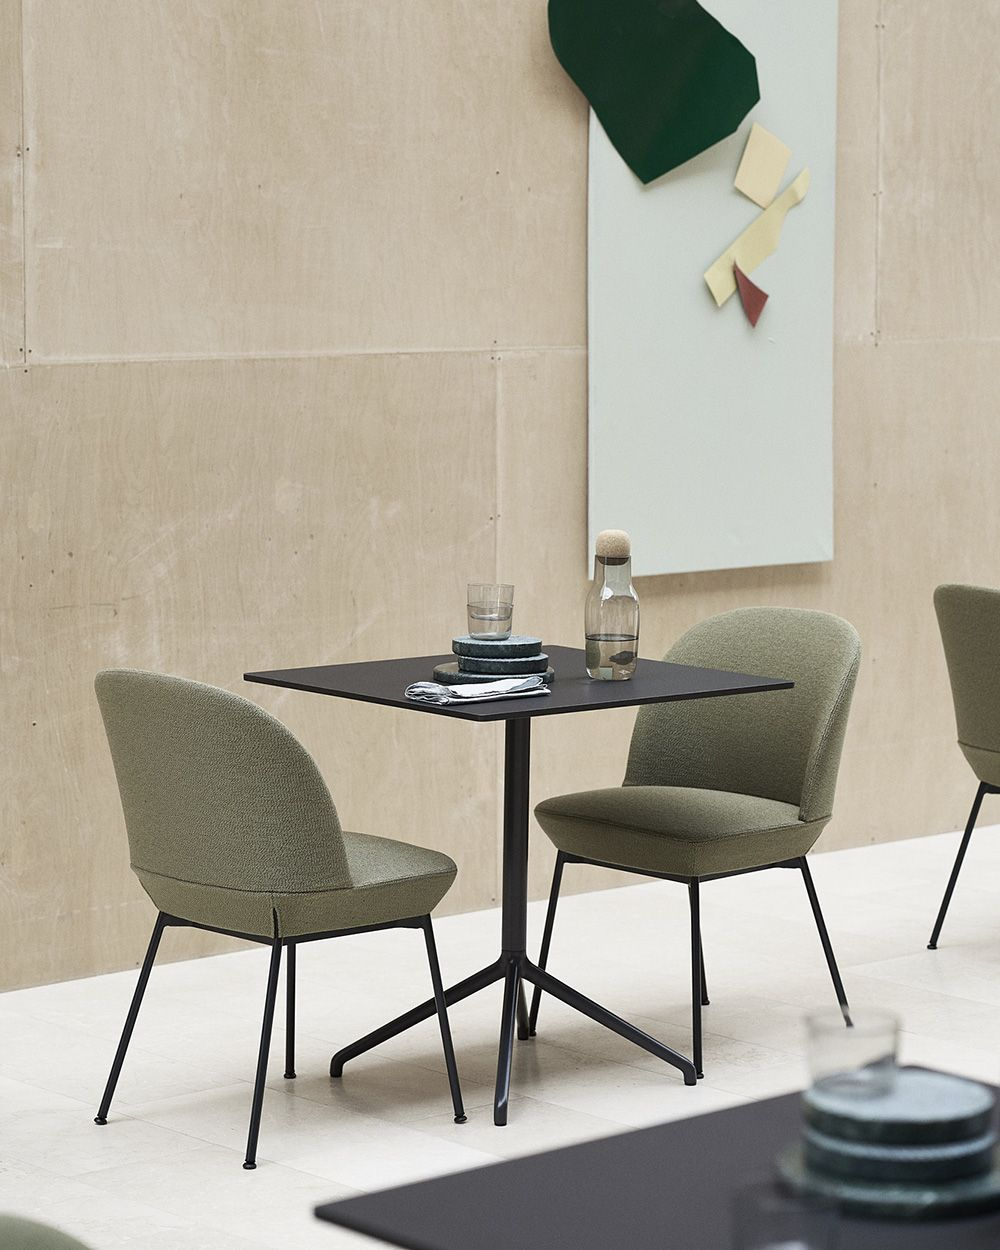 Comfortable And Contemporary Upholstered Dining Chair Home Decor Inspiration From Muuto Combinin Side Chairs Dining Room Decor Modern Scandinavian Sofa Design